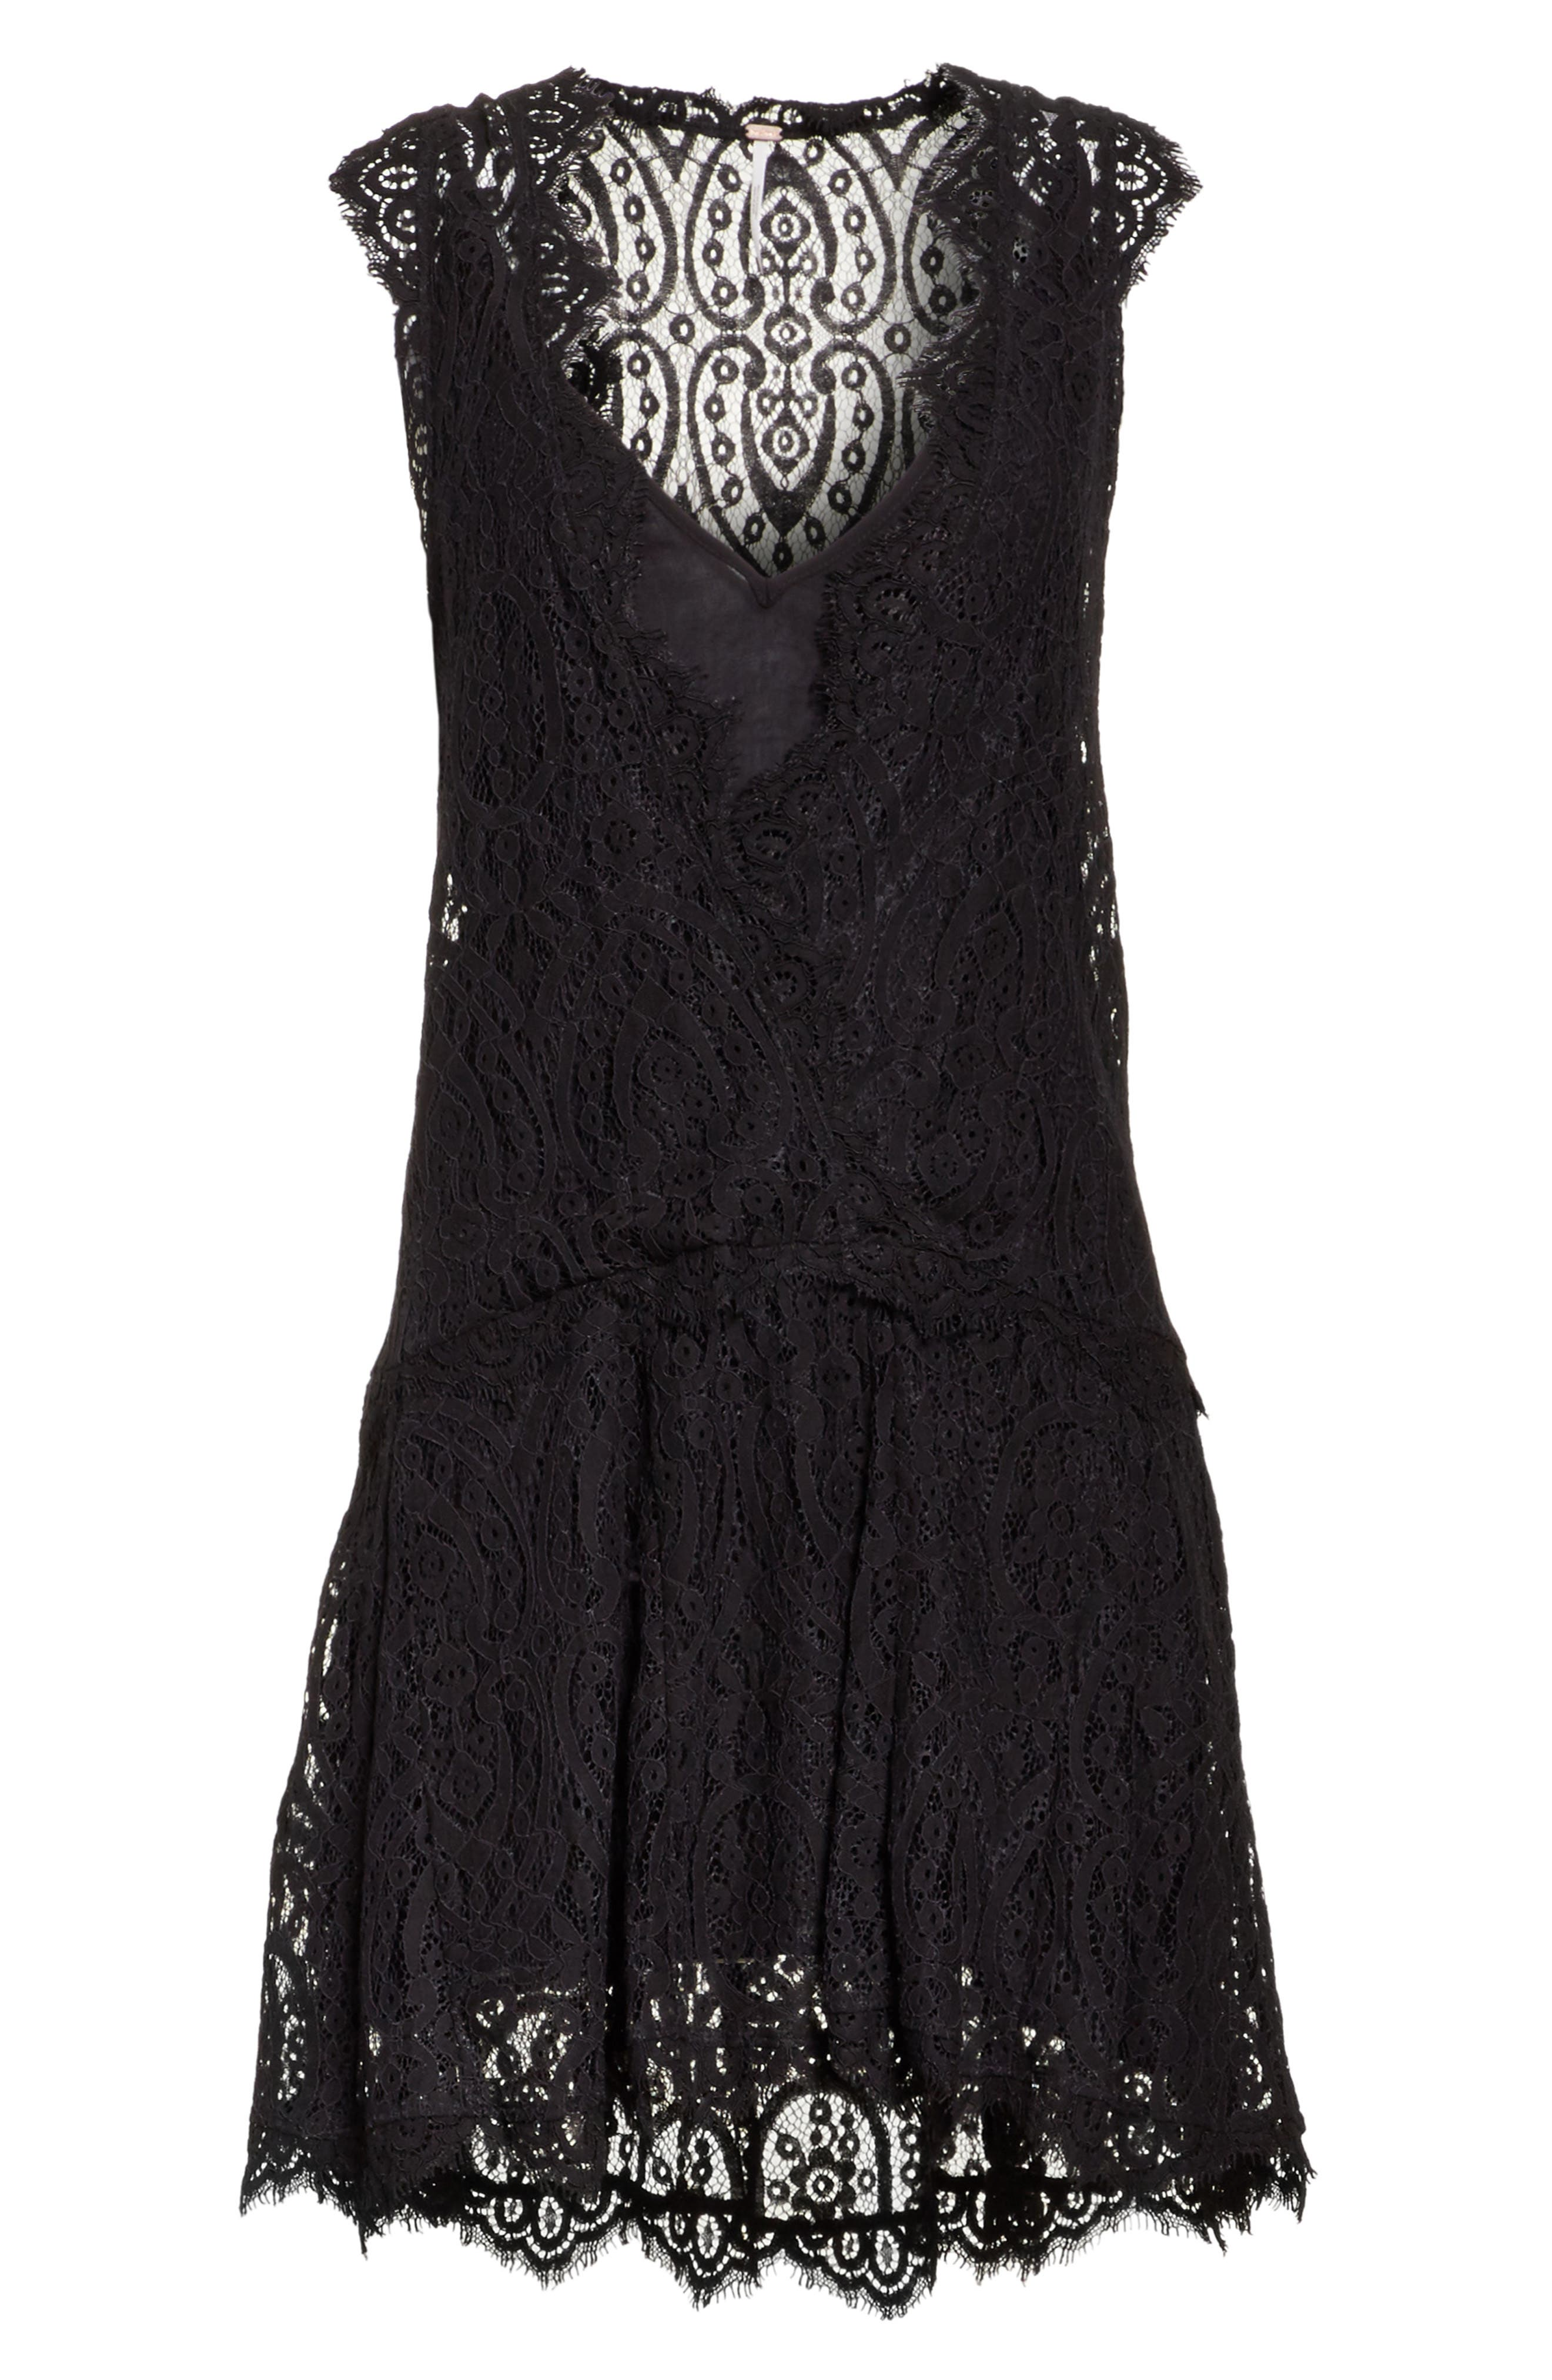 Heart in Two Lace Minidress,                             Alternate thumbnail 6, color,                             001